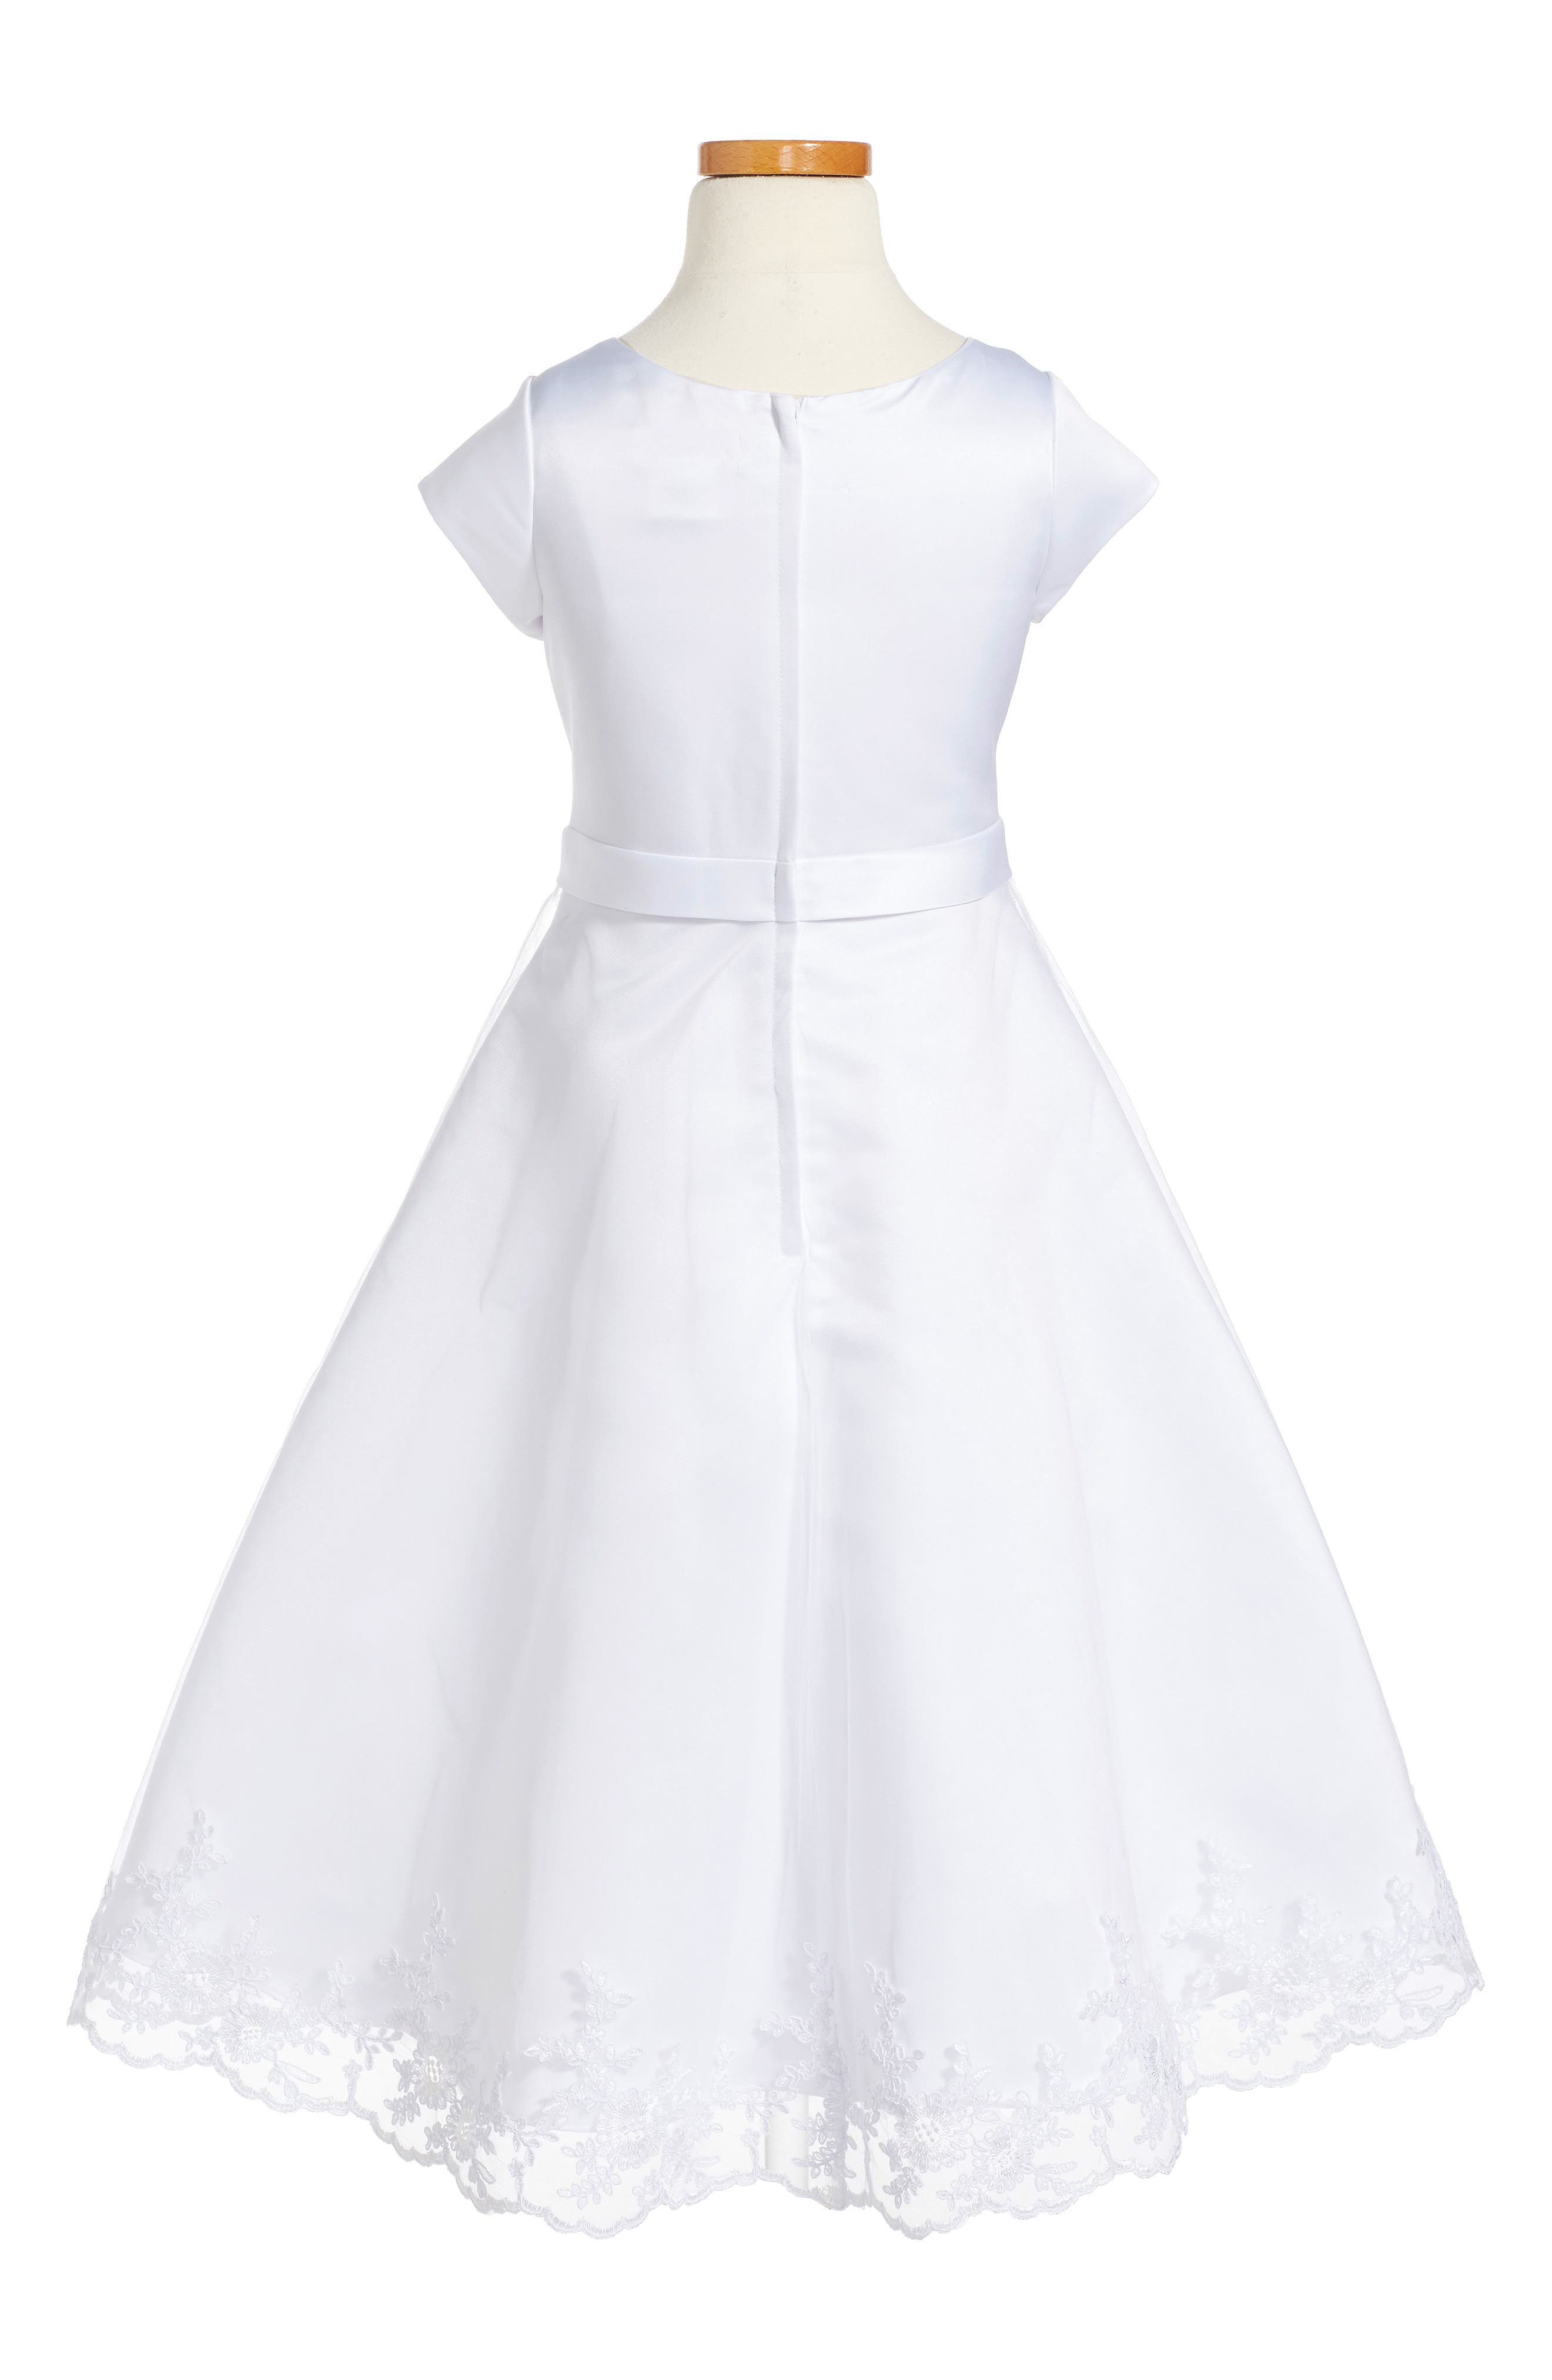 US ANGELS, Embroidered A-Line Dress, Main thumbnail 1, color, WHITE